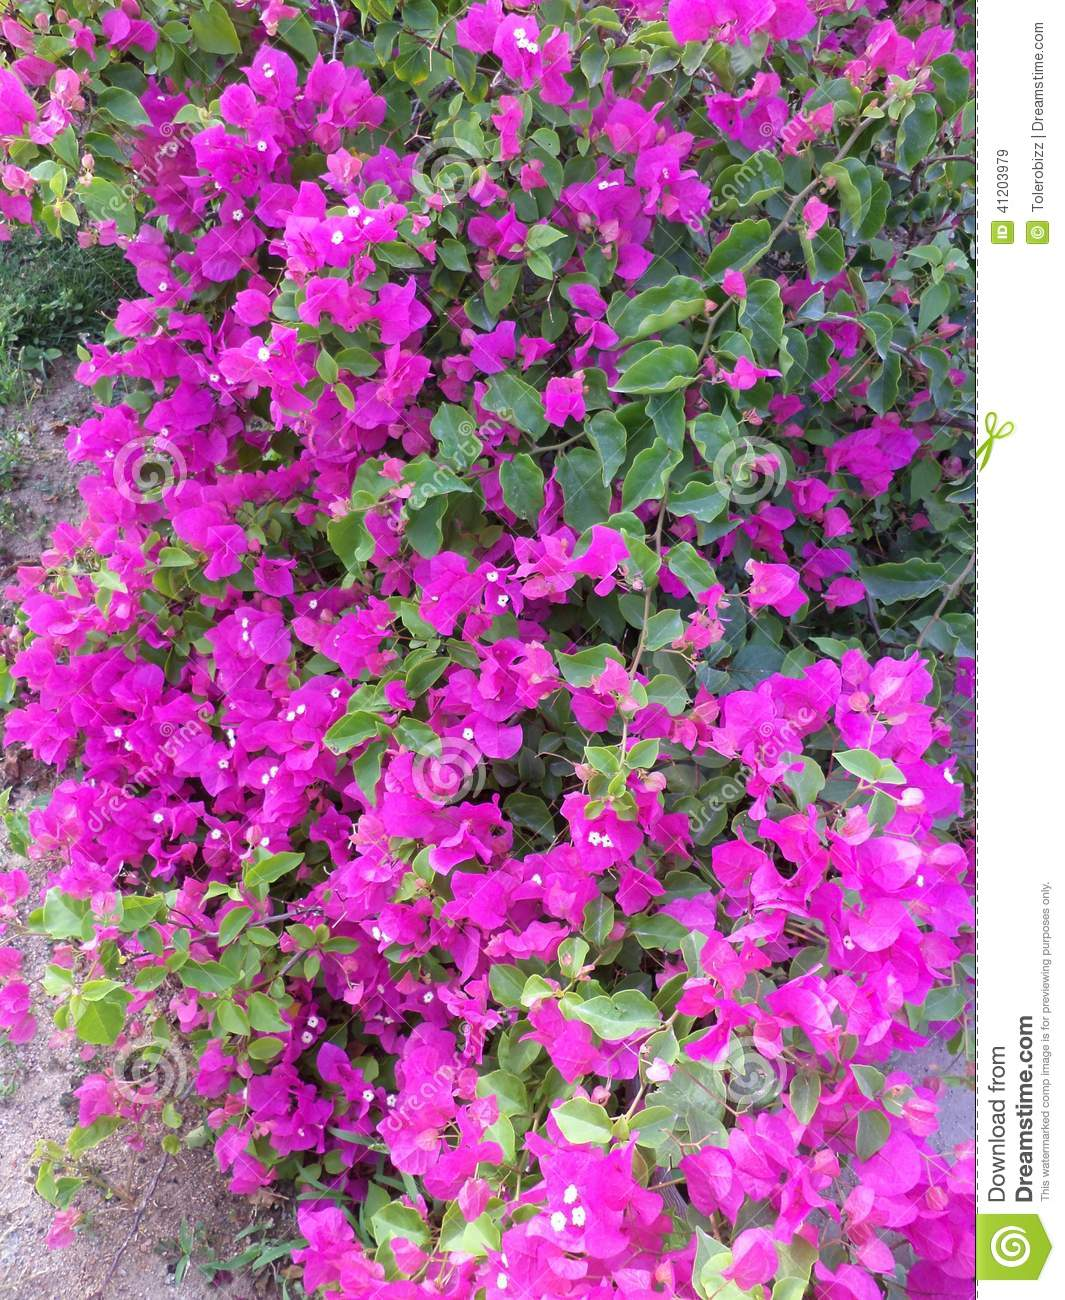 Pink flowers on the bushes stock image image of pink 41203979 pink flowers on the bushes mightylinksfo